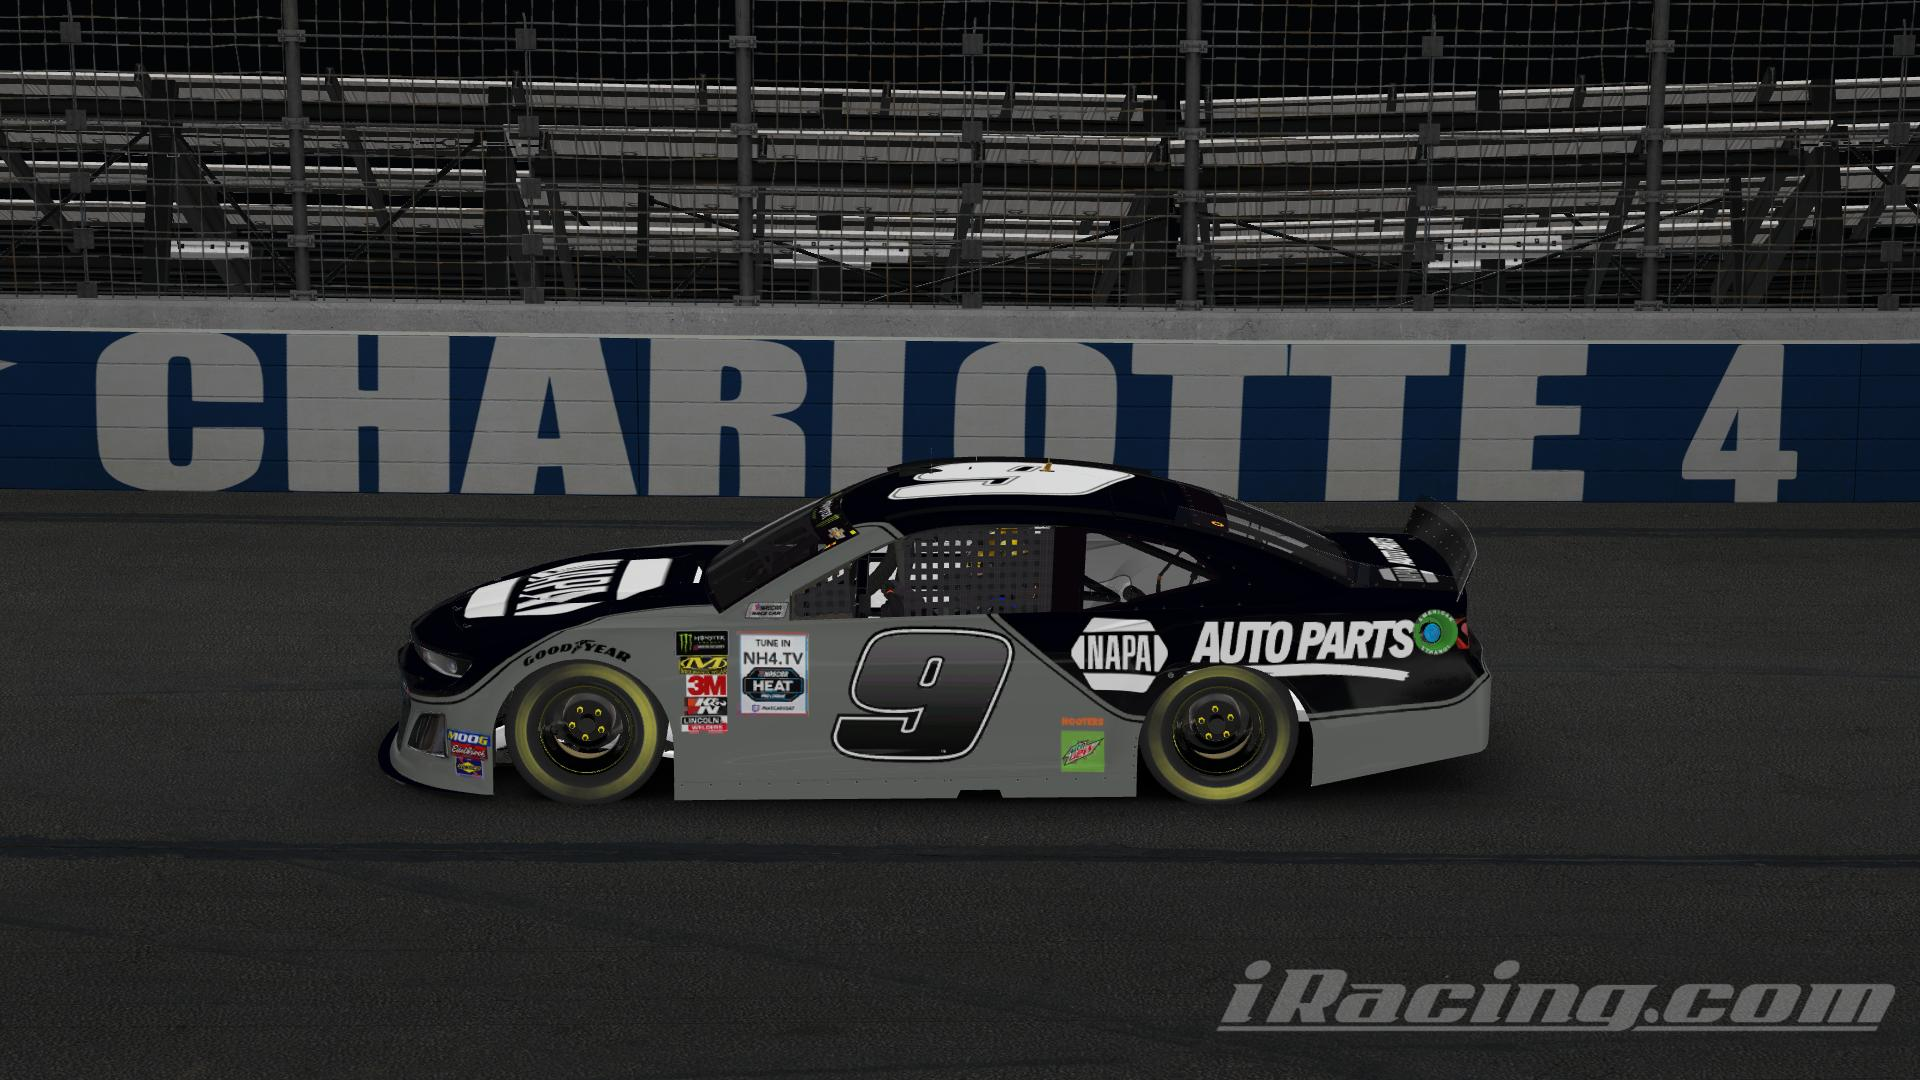 Preview of NAPA Chase Elliott Black Concept Chevy (No #) by Chris T J.